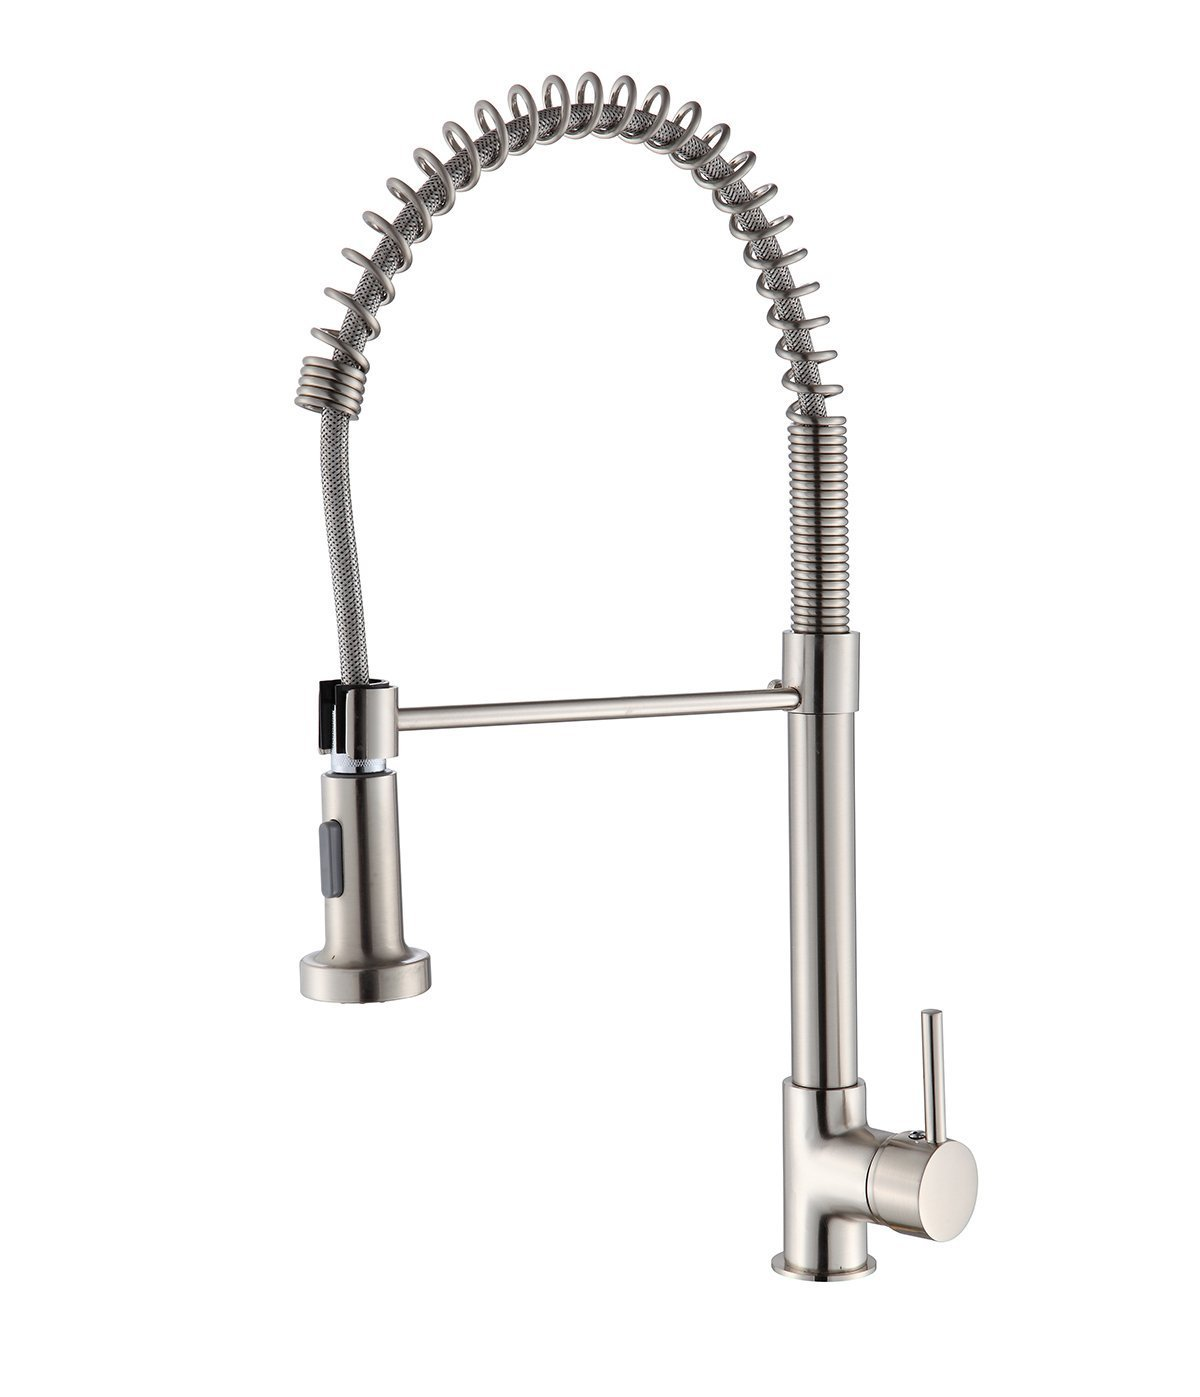 Buy Hive Kitchen Faucet Brushed Nickel Pull Down Swivel Spout Out Sink  Mixer Tap Single